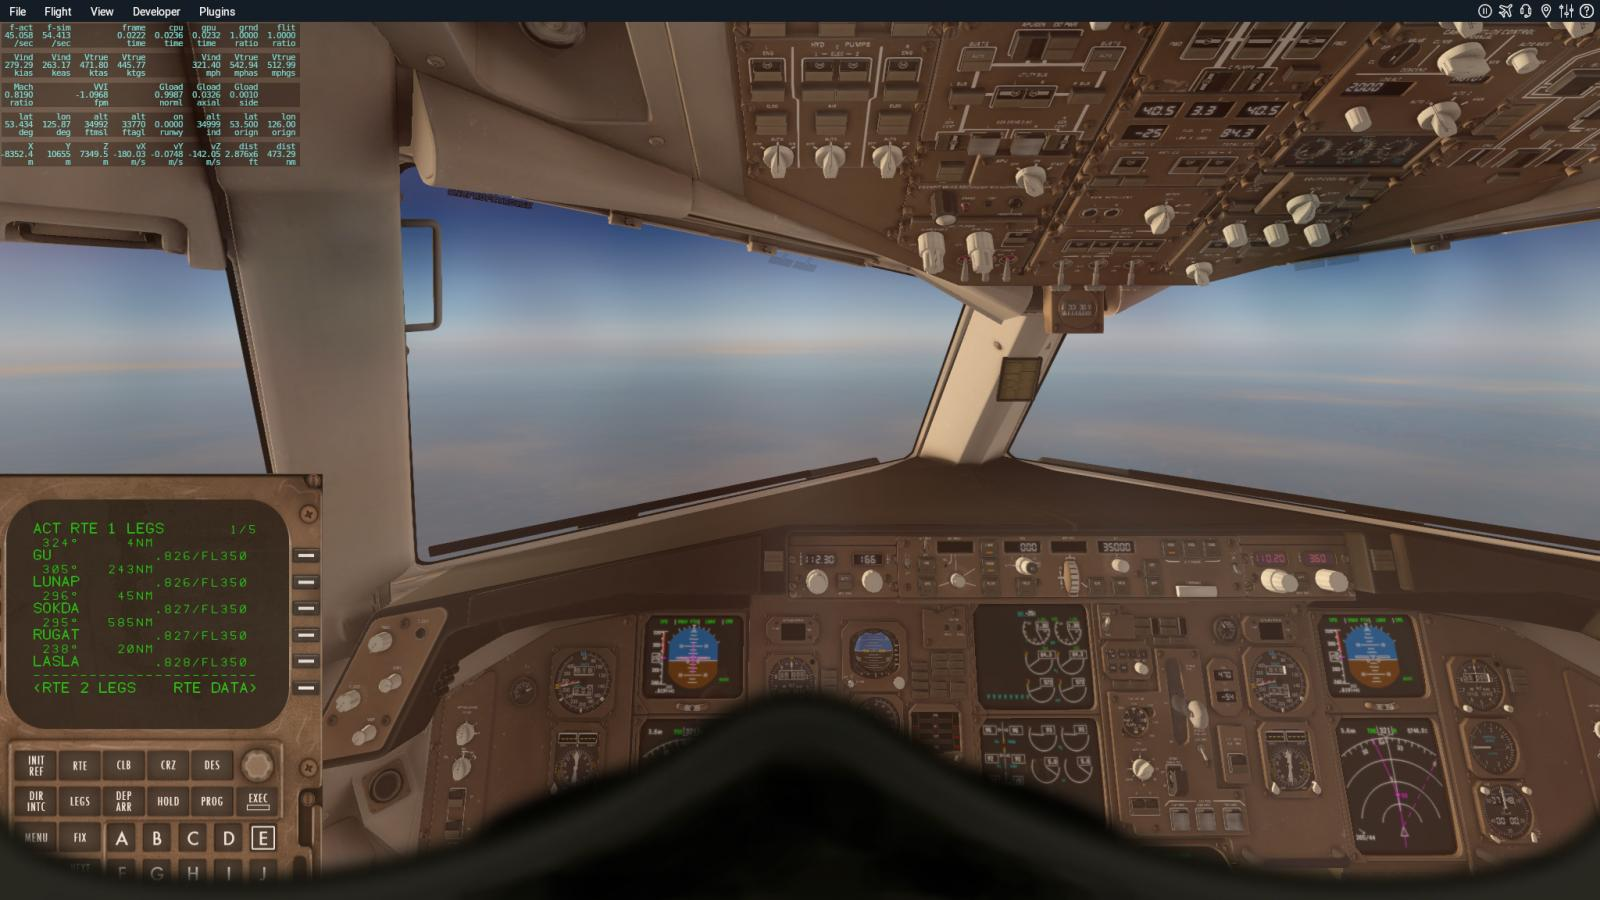 Solved]What is it?(oxygen mask) - Boeing 767 Professional - X-Plane